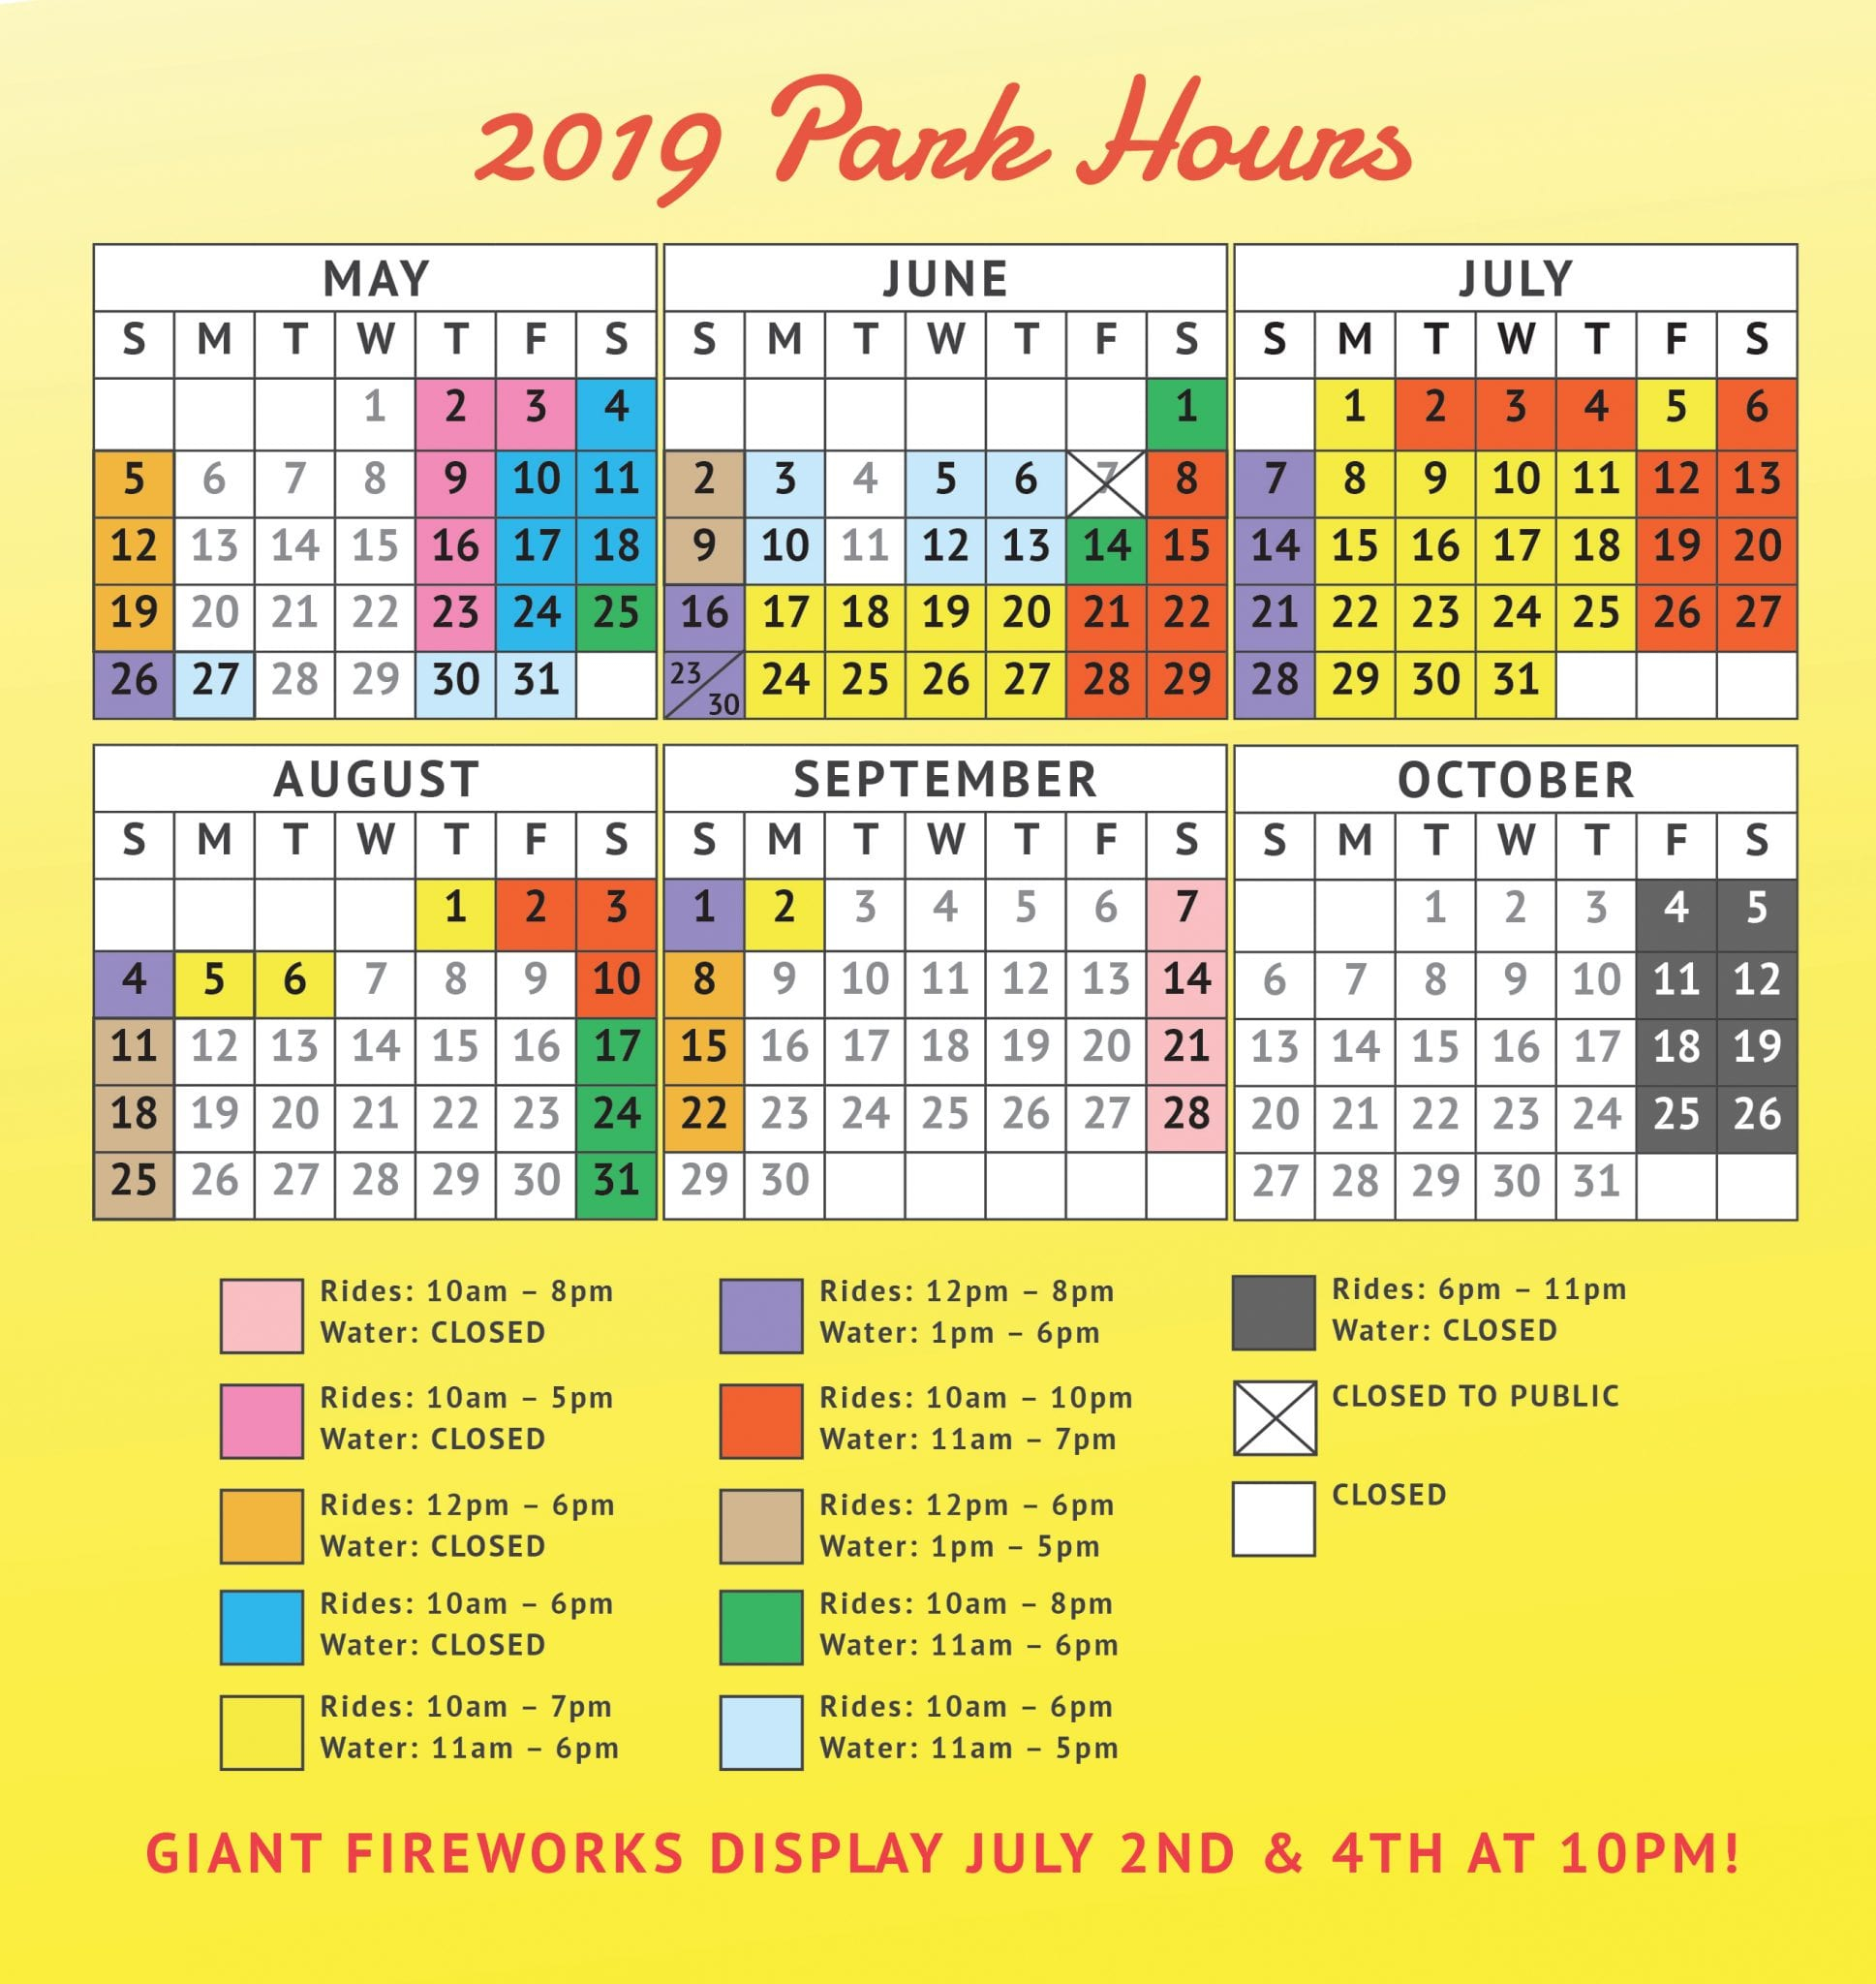 Six Flags Calendar 2019 Bring A Friend - About Flag Collections with regard to Six Flags Over Georgia Calendar